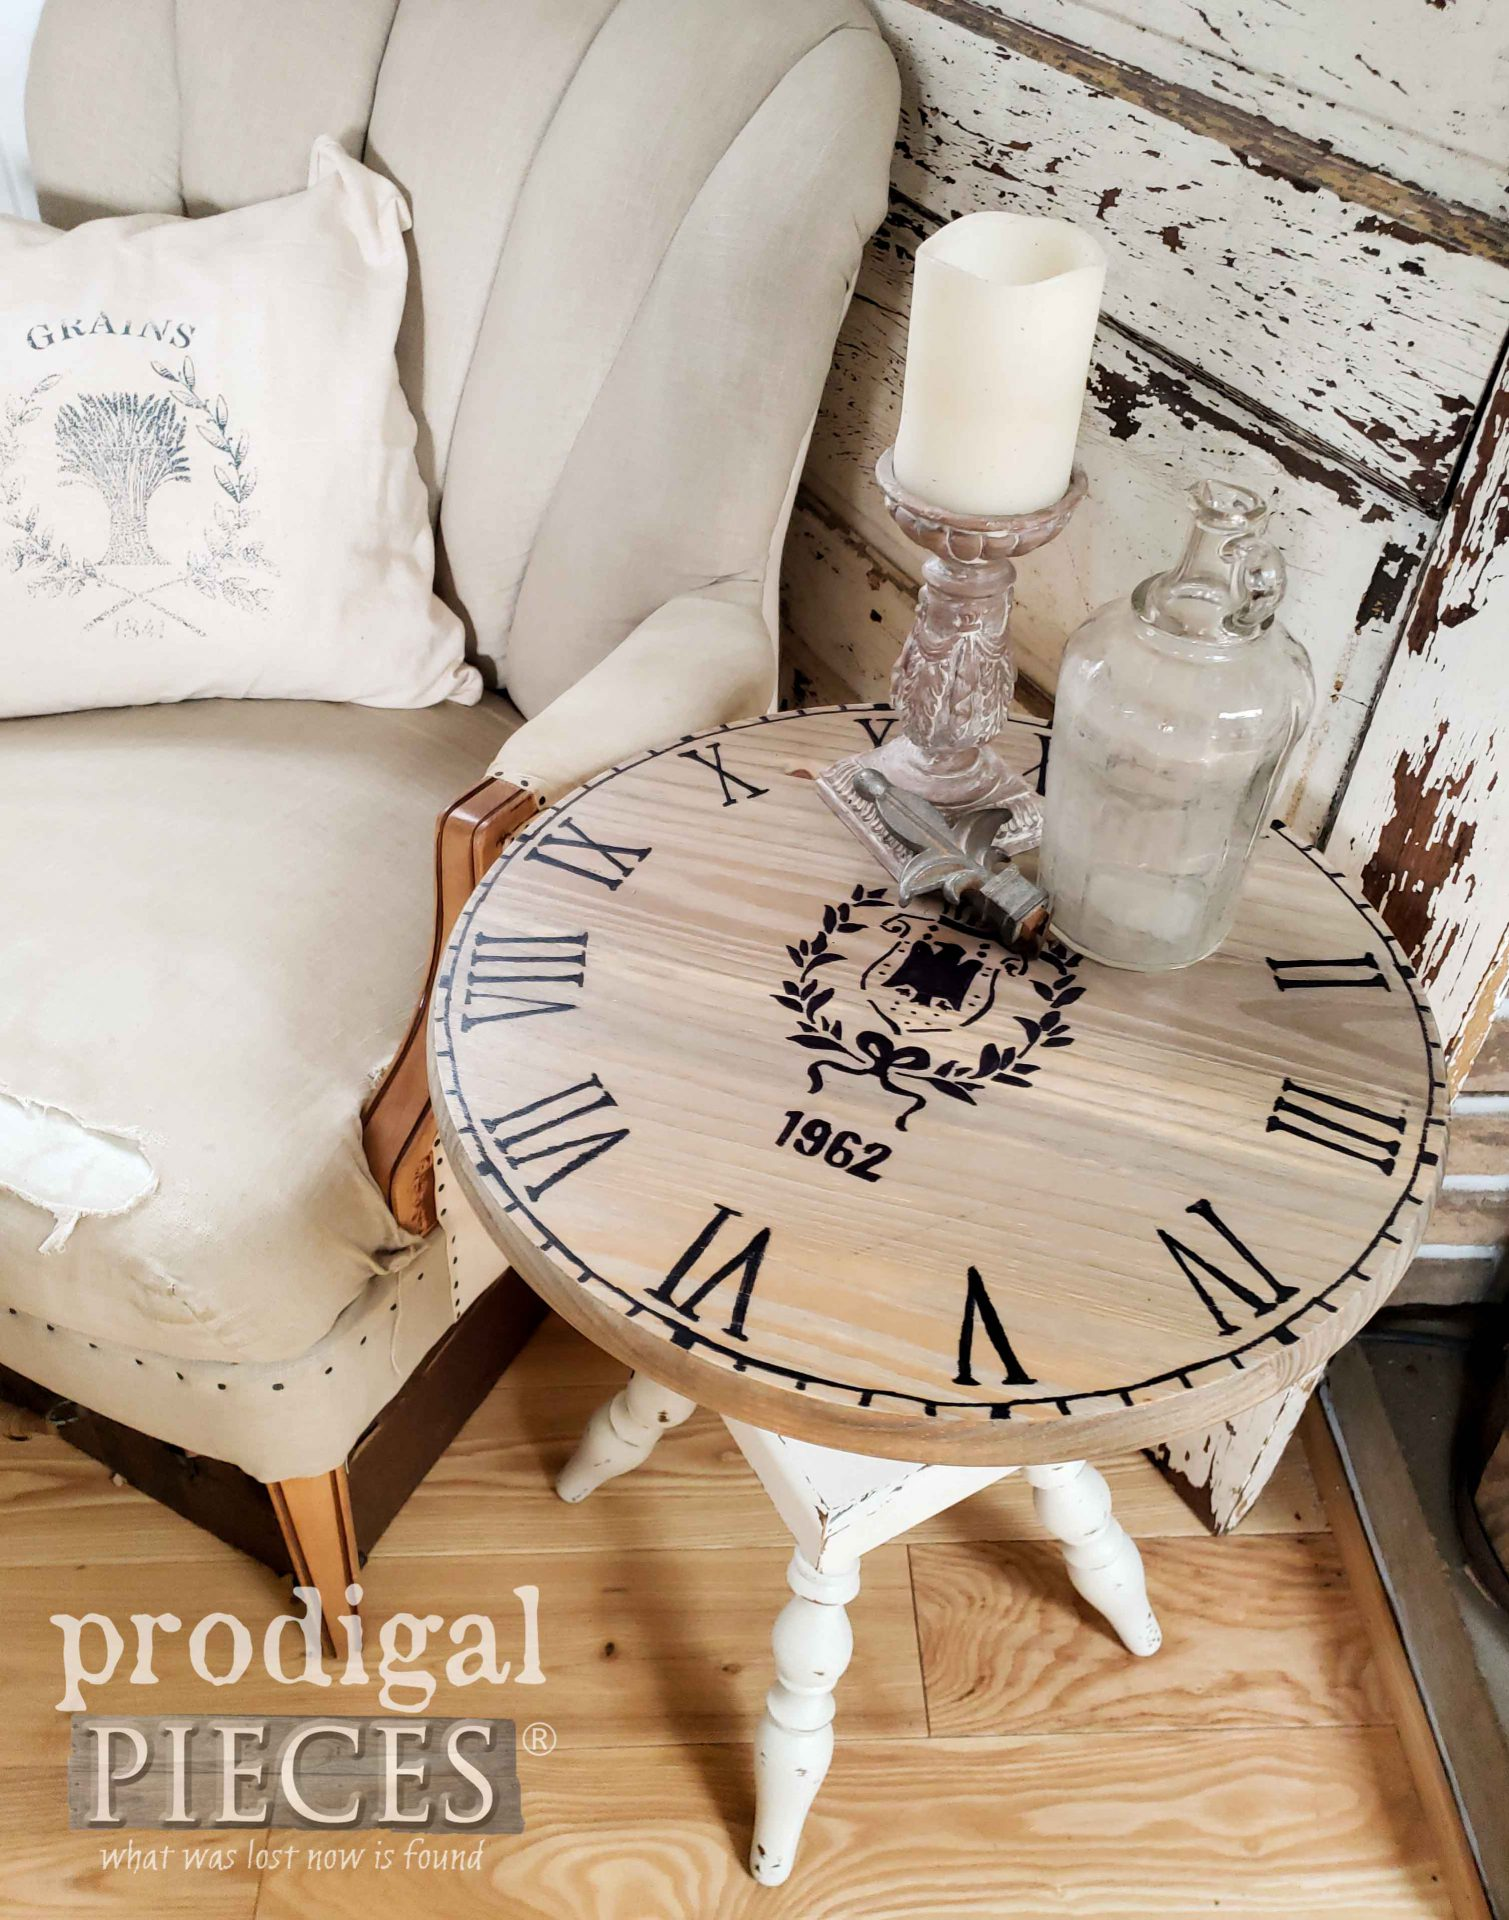 Roman Numeral Upcycled Clock Face Table by Larissa of Prodigal Pieces | prodigalpieces.com #prodigalpieces #upcycled #farmhouse #home #diy #furniture #homedecor